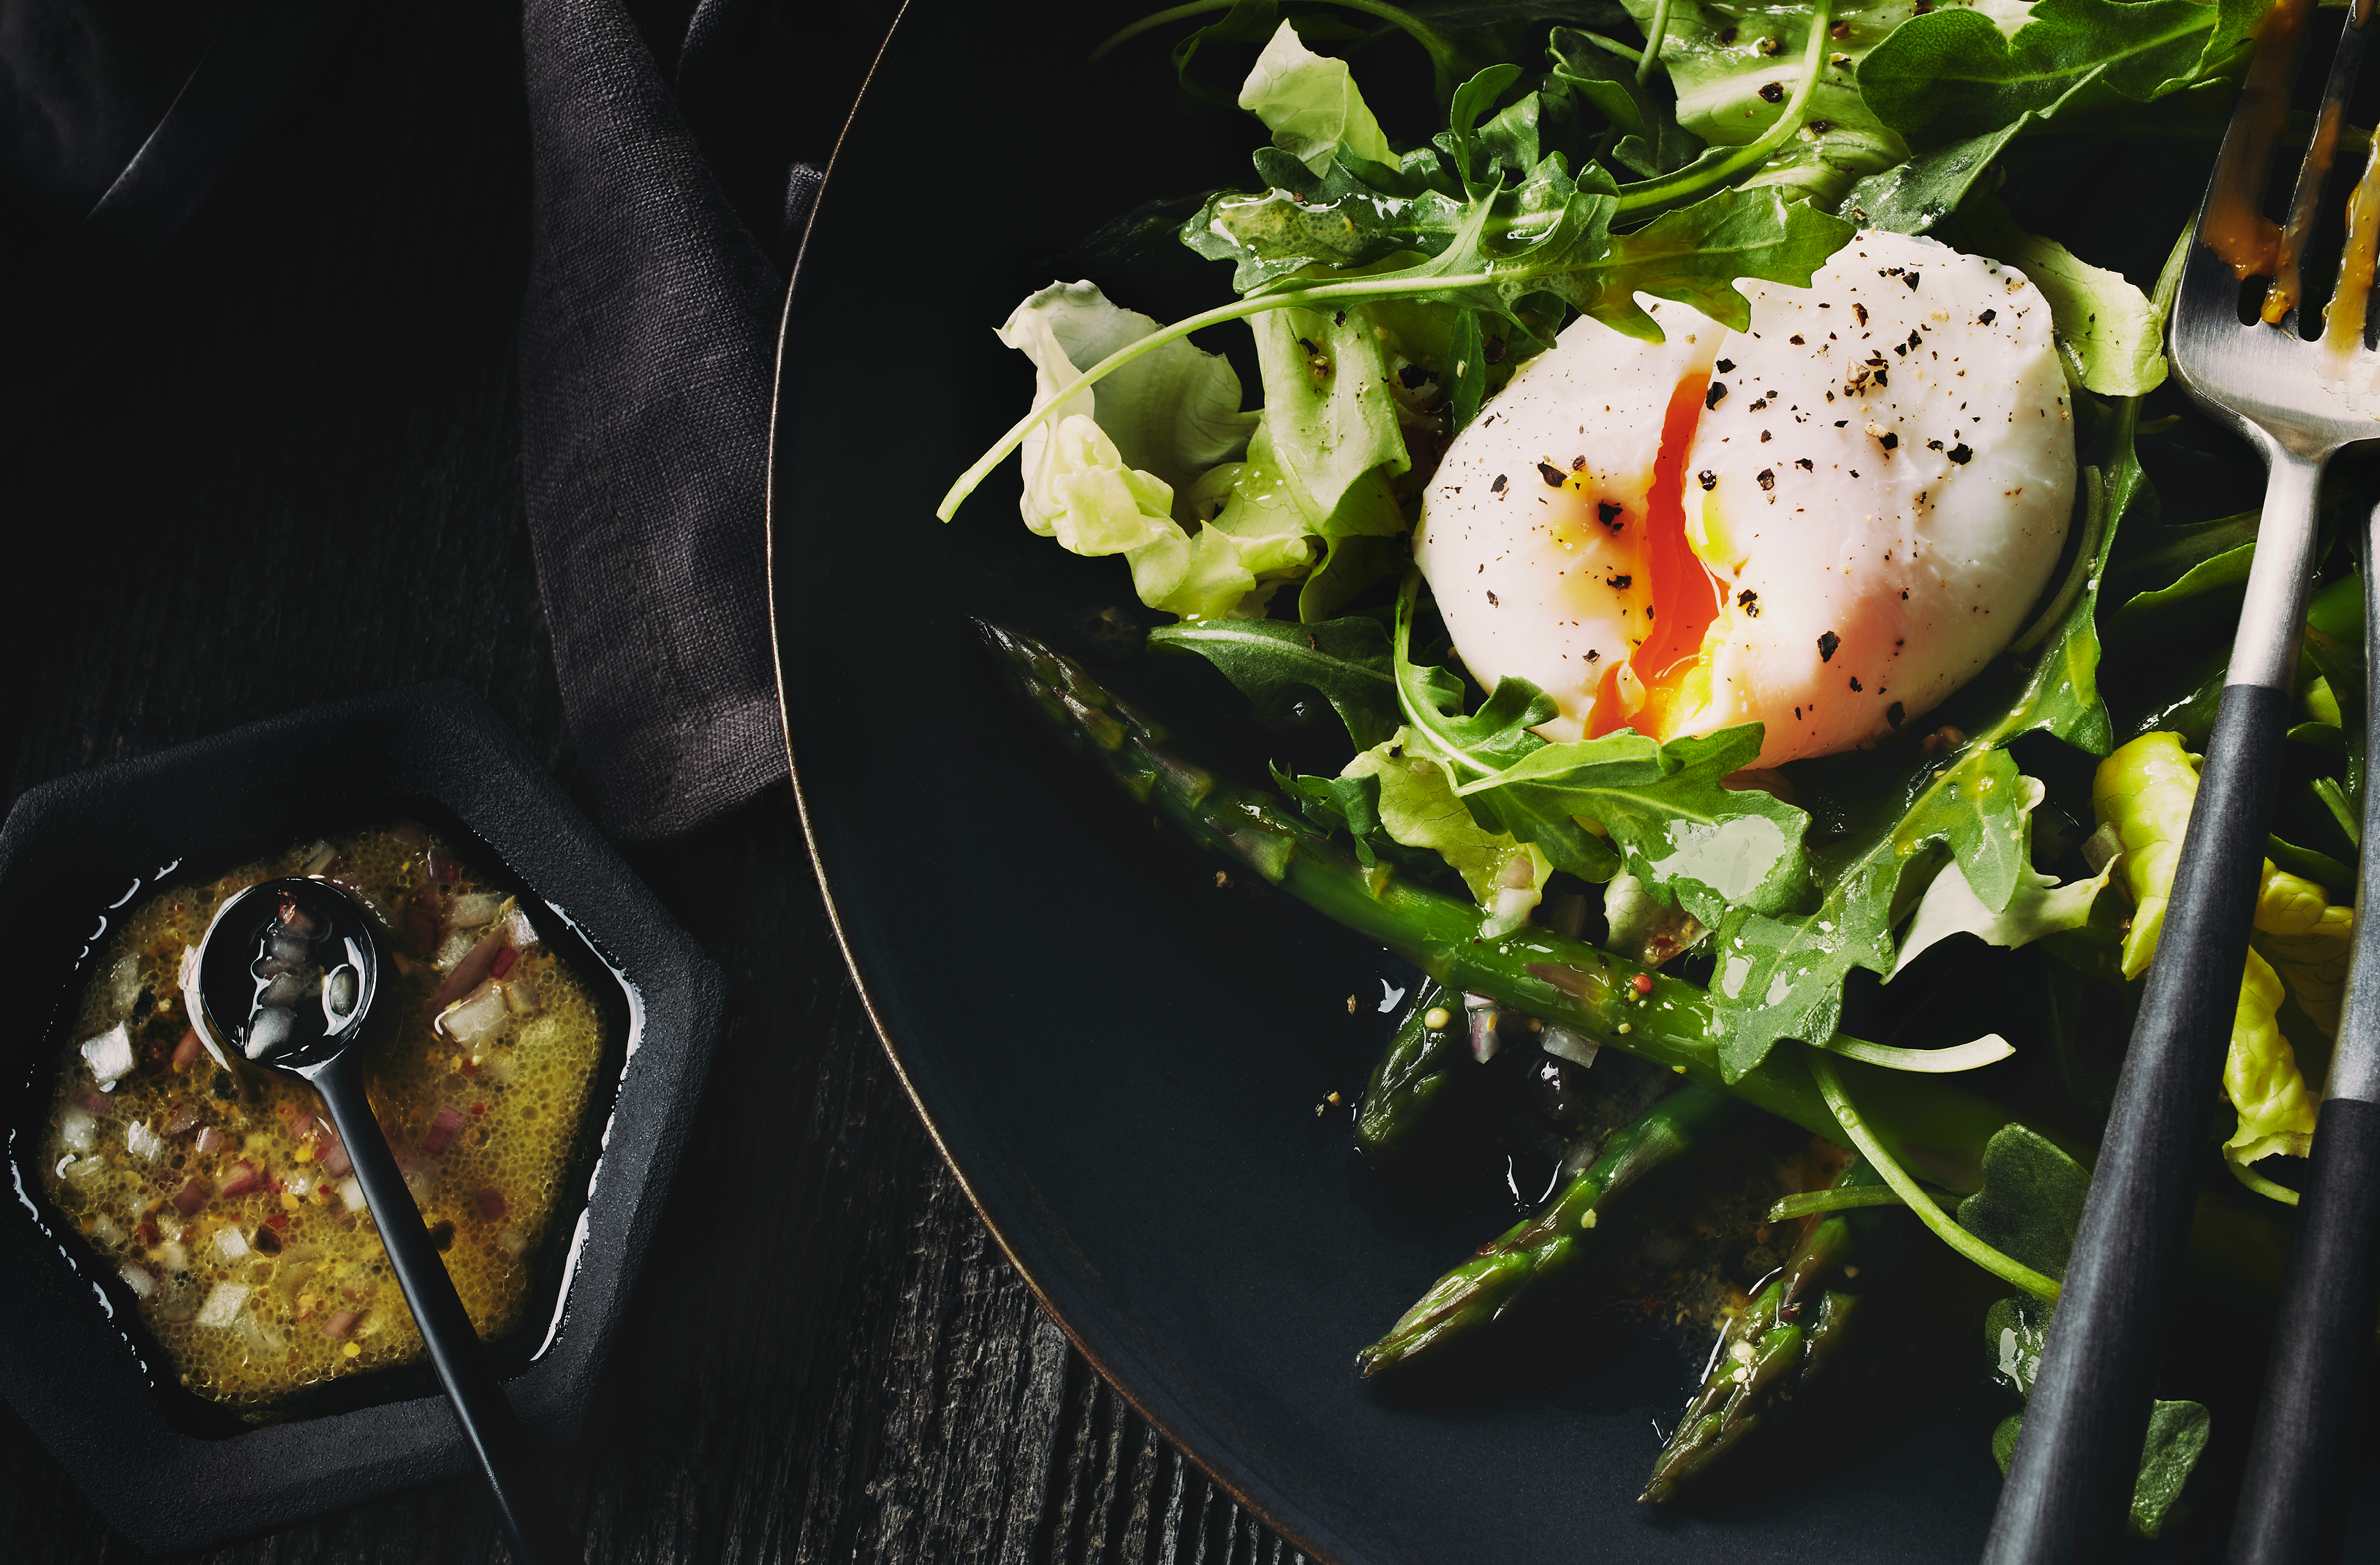 A plate of asparagus and mixed greens topped with umami aioli & a poached egg